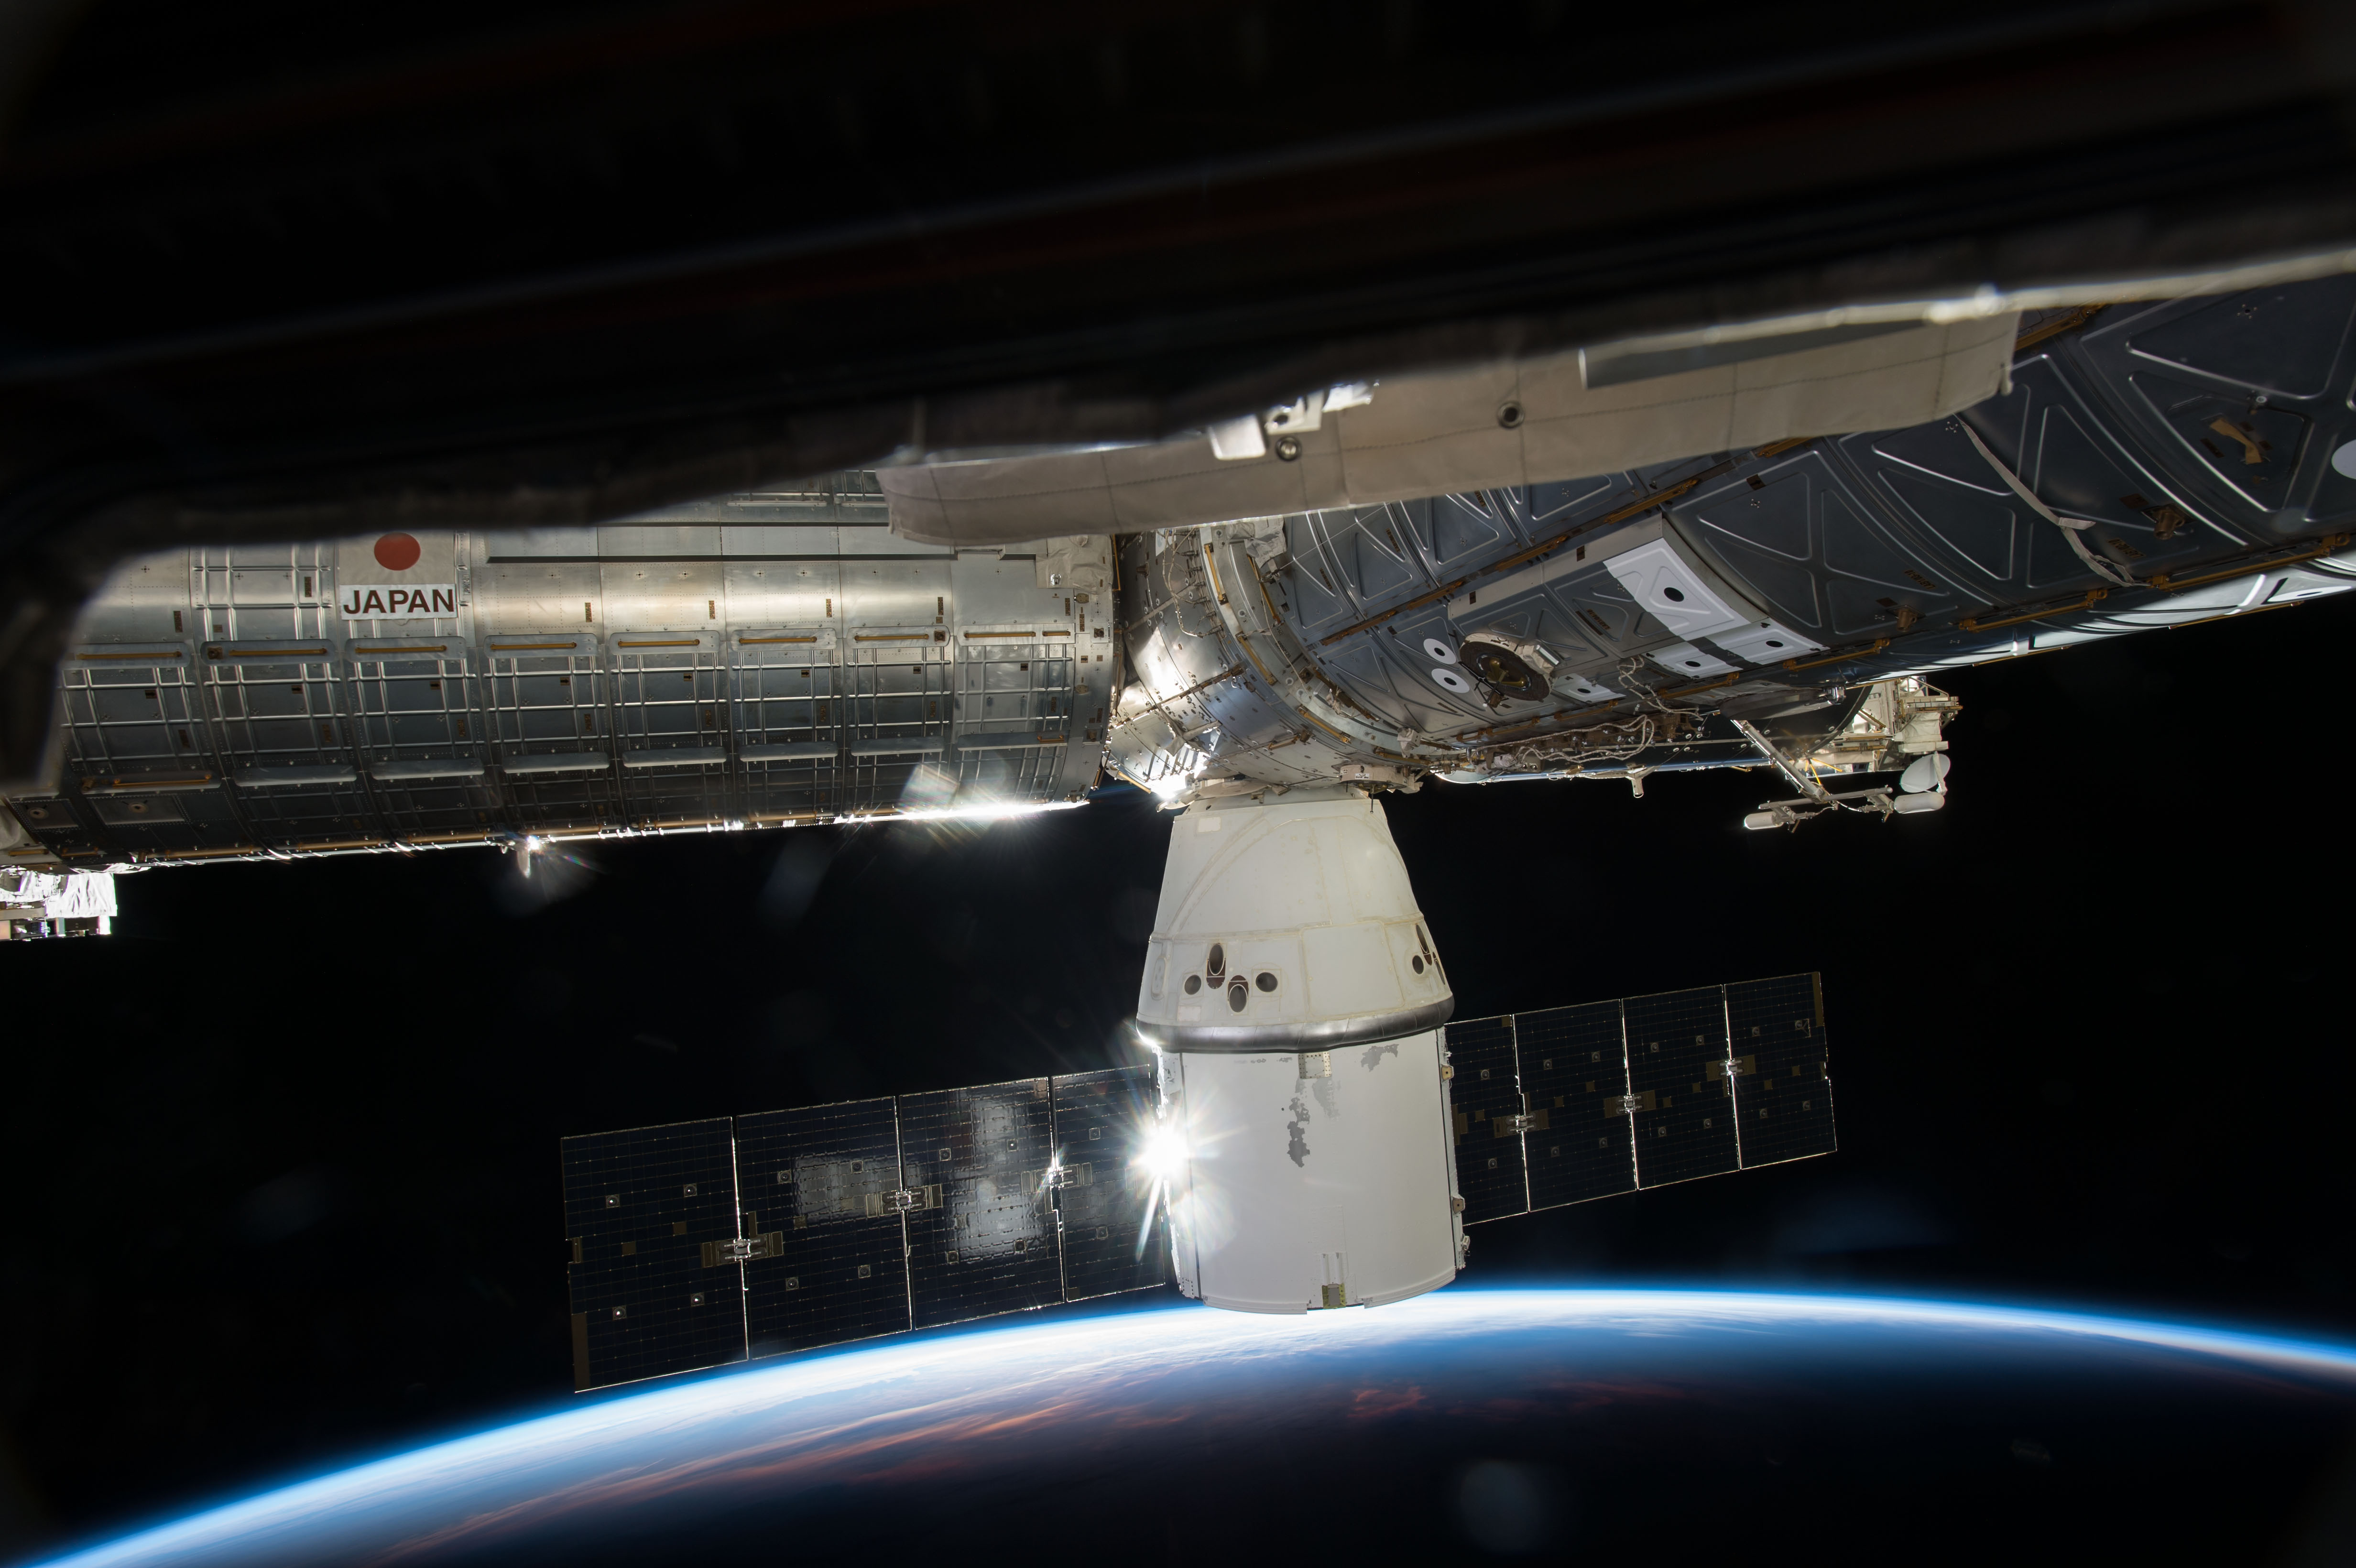 earth dragon from spacex - photo #23